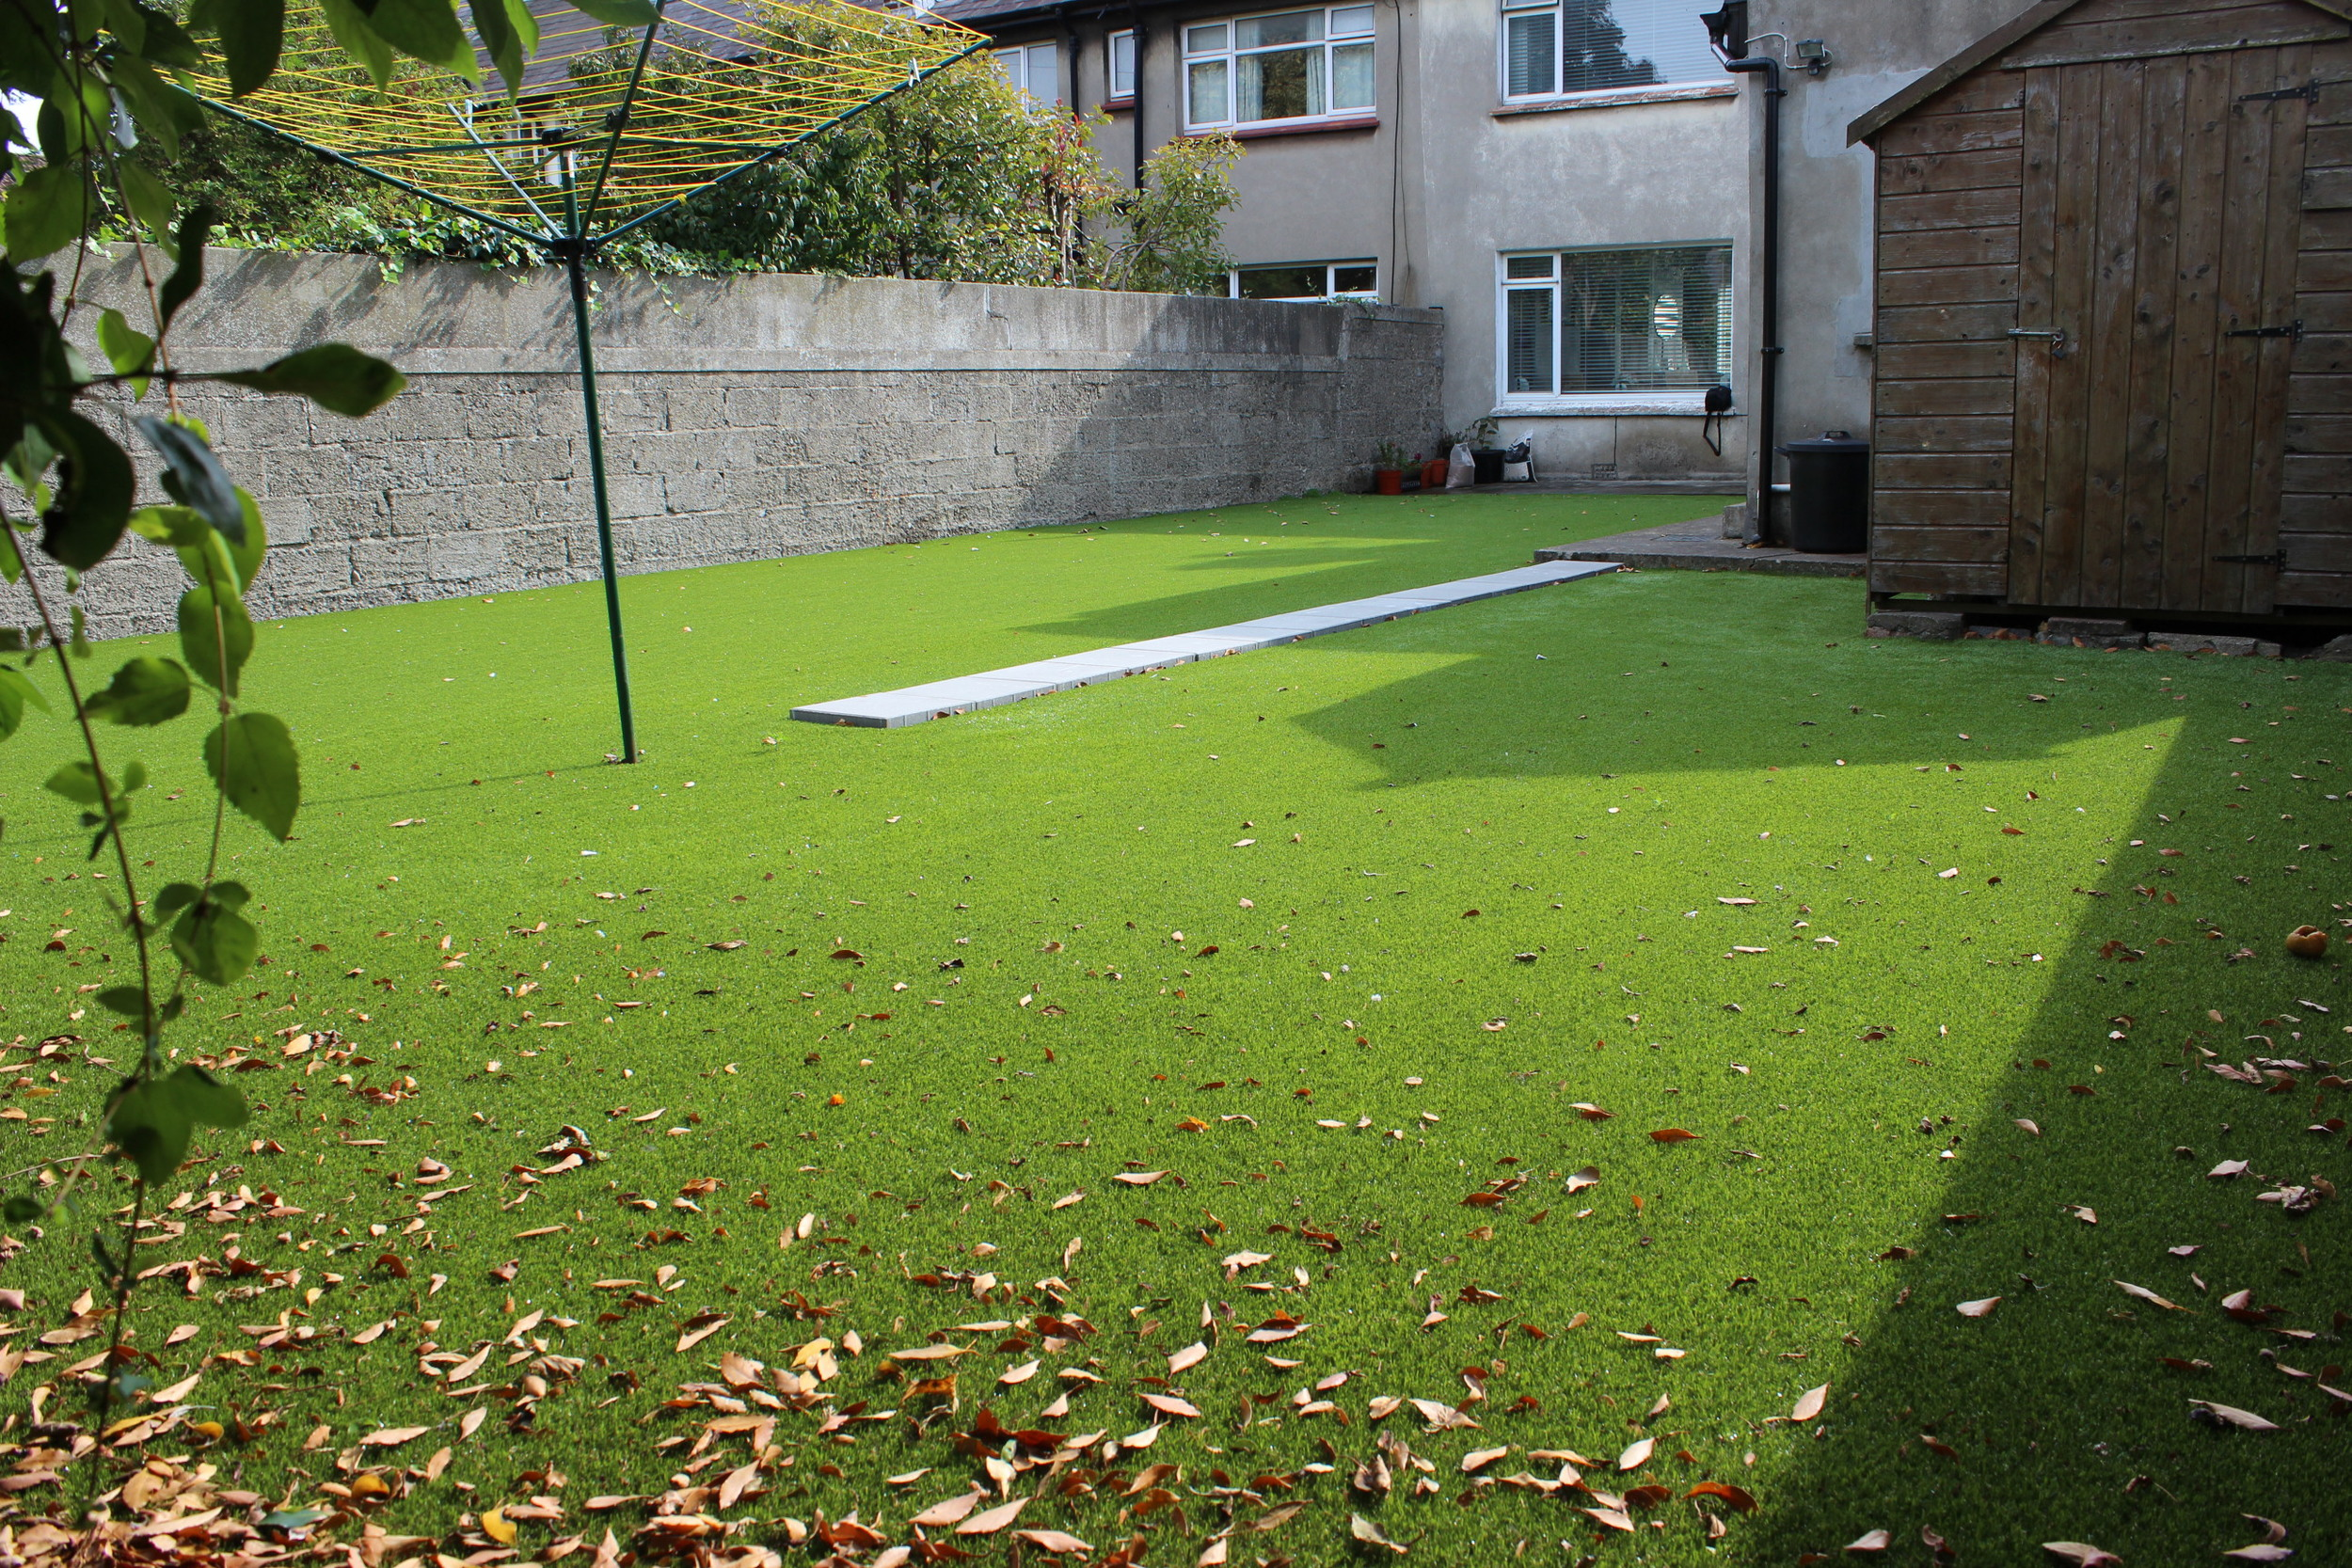 TigerTurf artificial grass 'Finesse Lite' installation